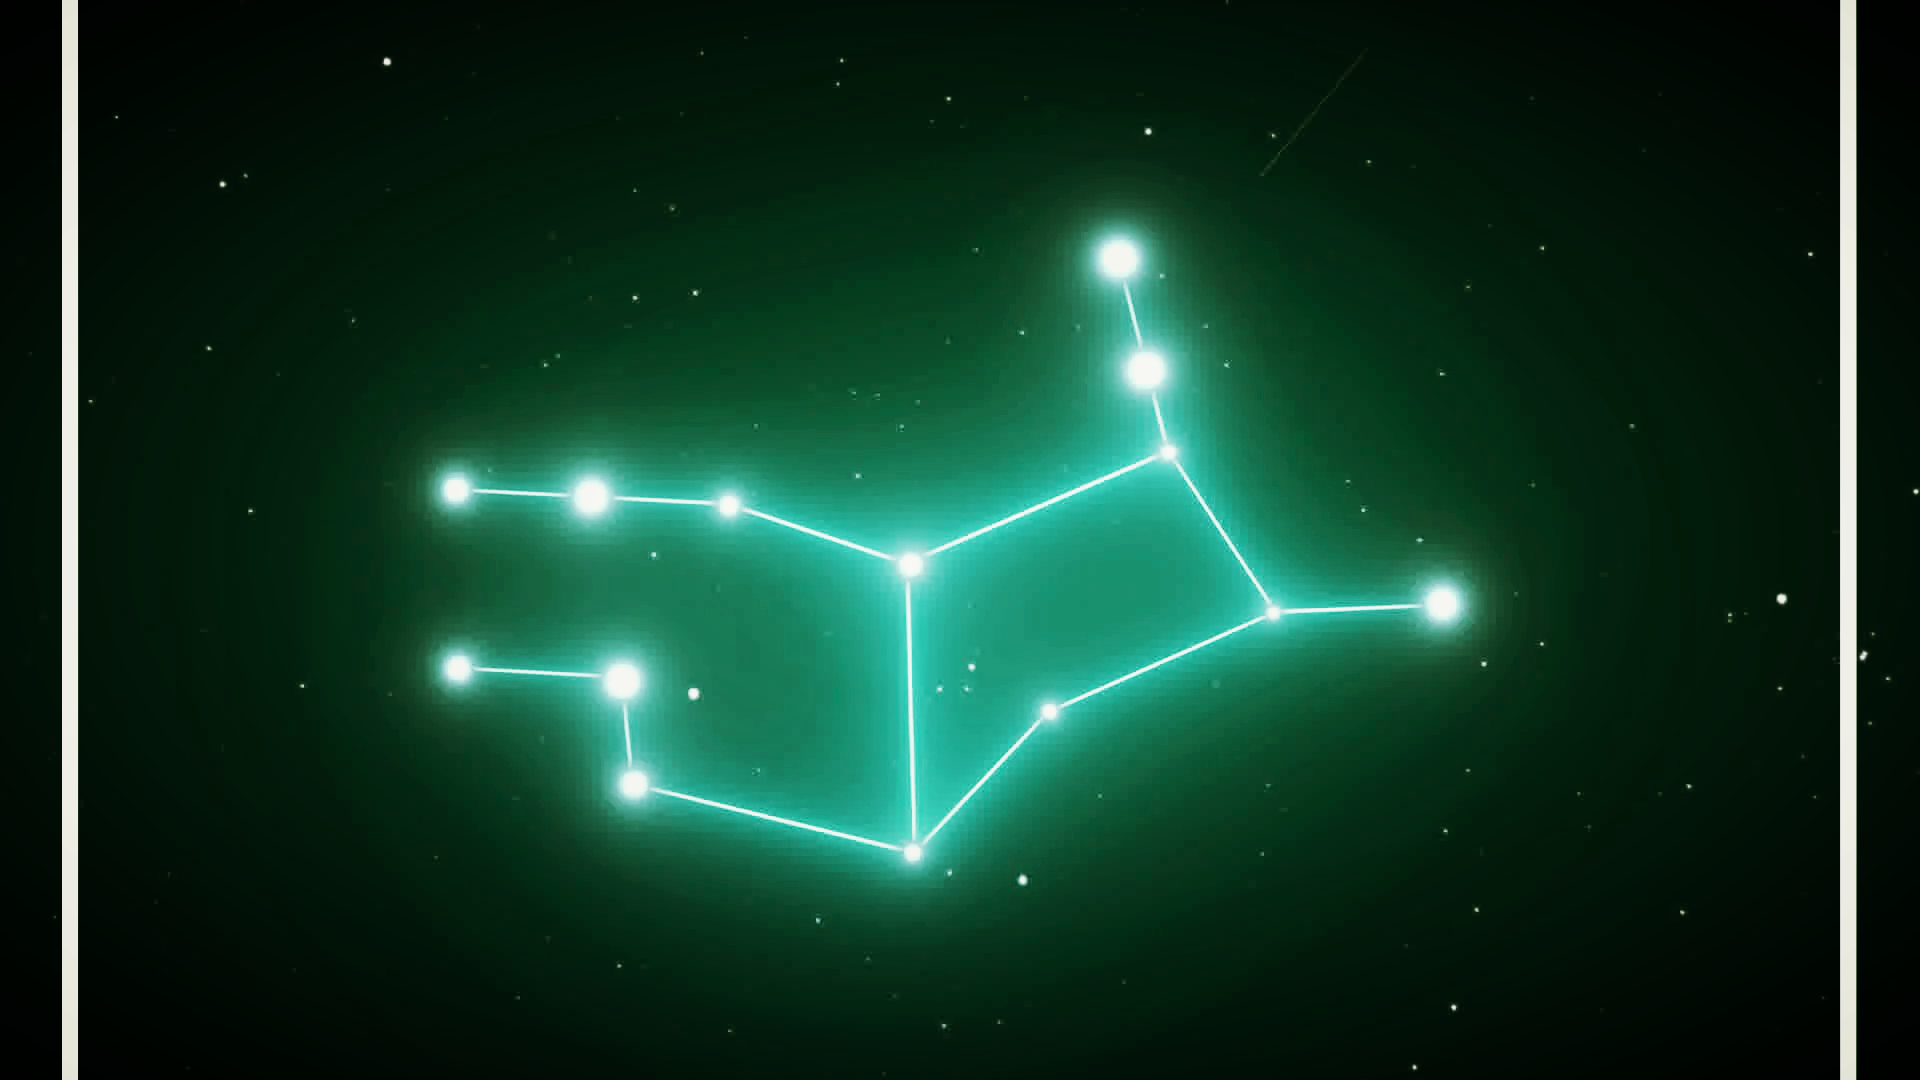 virgo-constellation-on-a-beautiful-starry-night-background_hf0lqzzh_thumbnail-full09.png